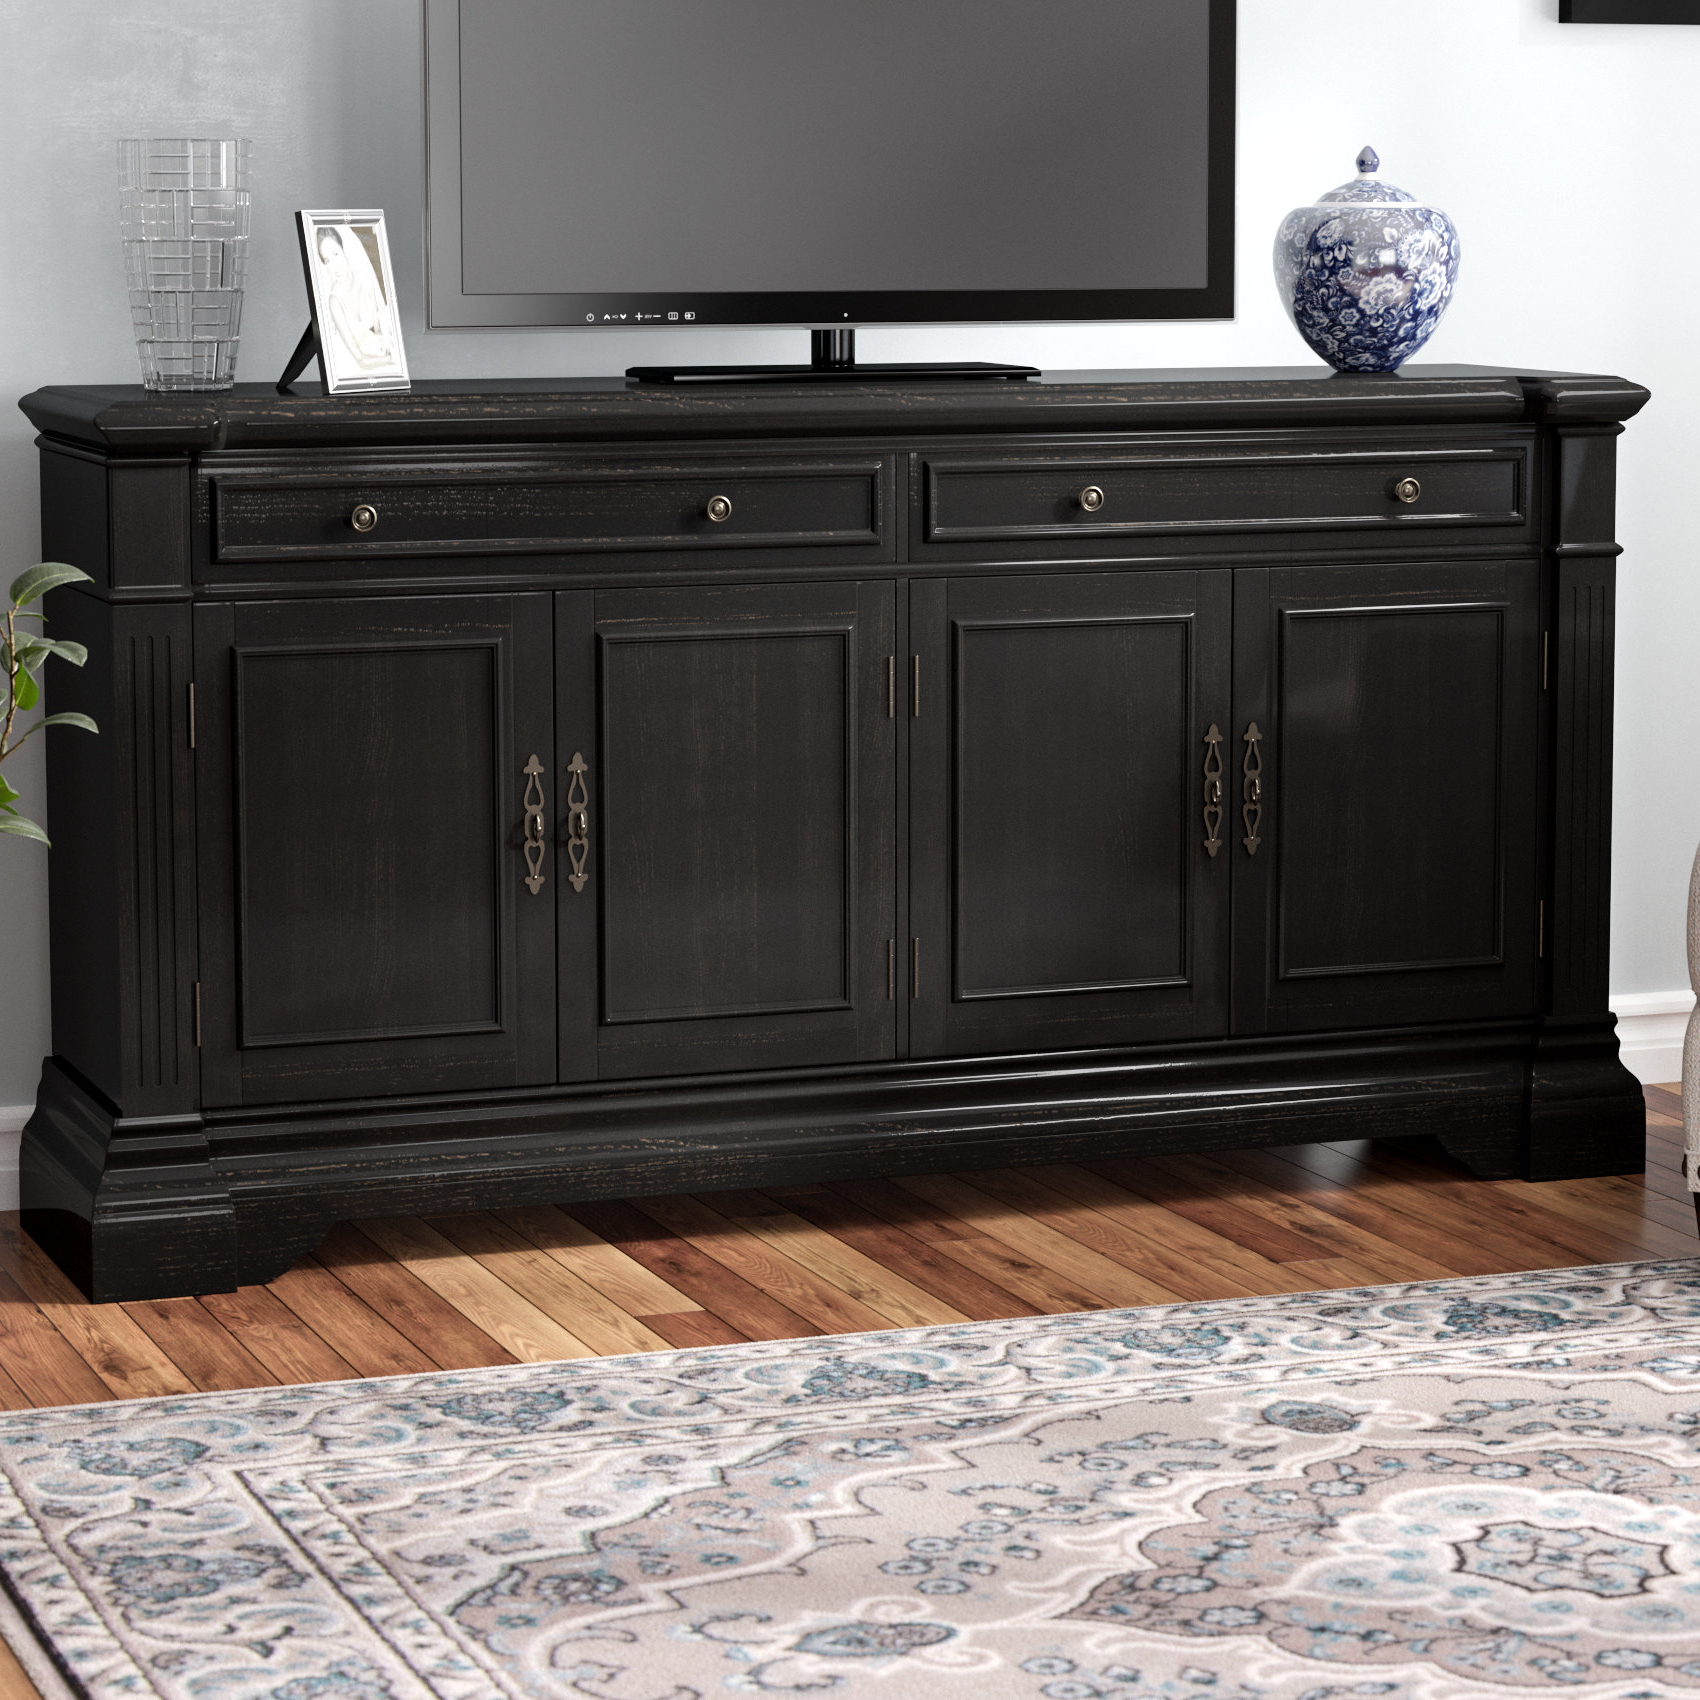 Tall Tv Stands You'll Love | Wayfair With Regard To Wyatt 68 Inch Tv Stands (Gallery 13 of 20)